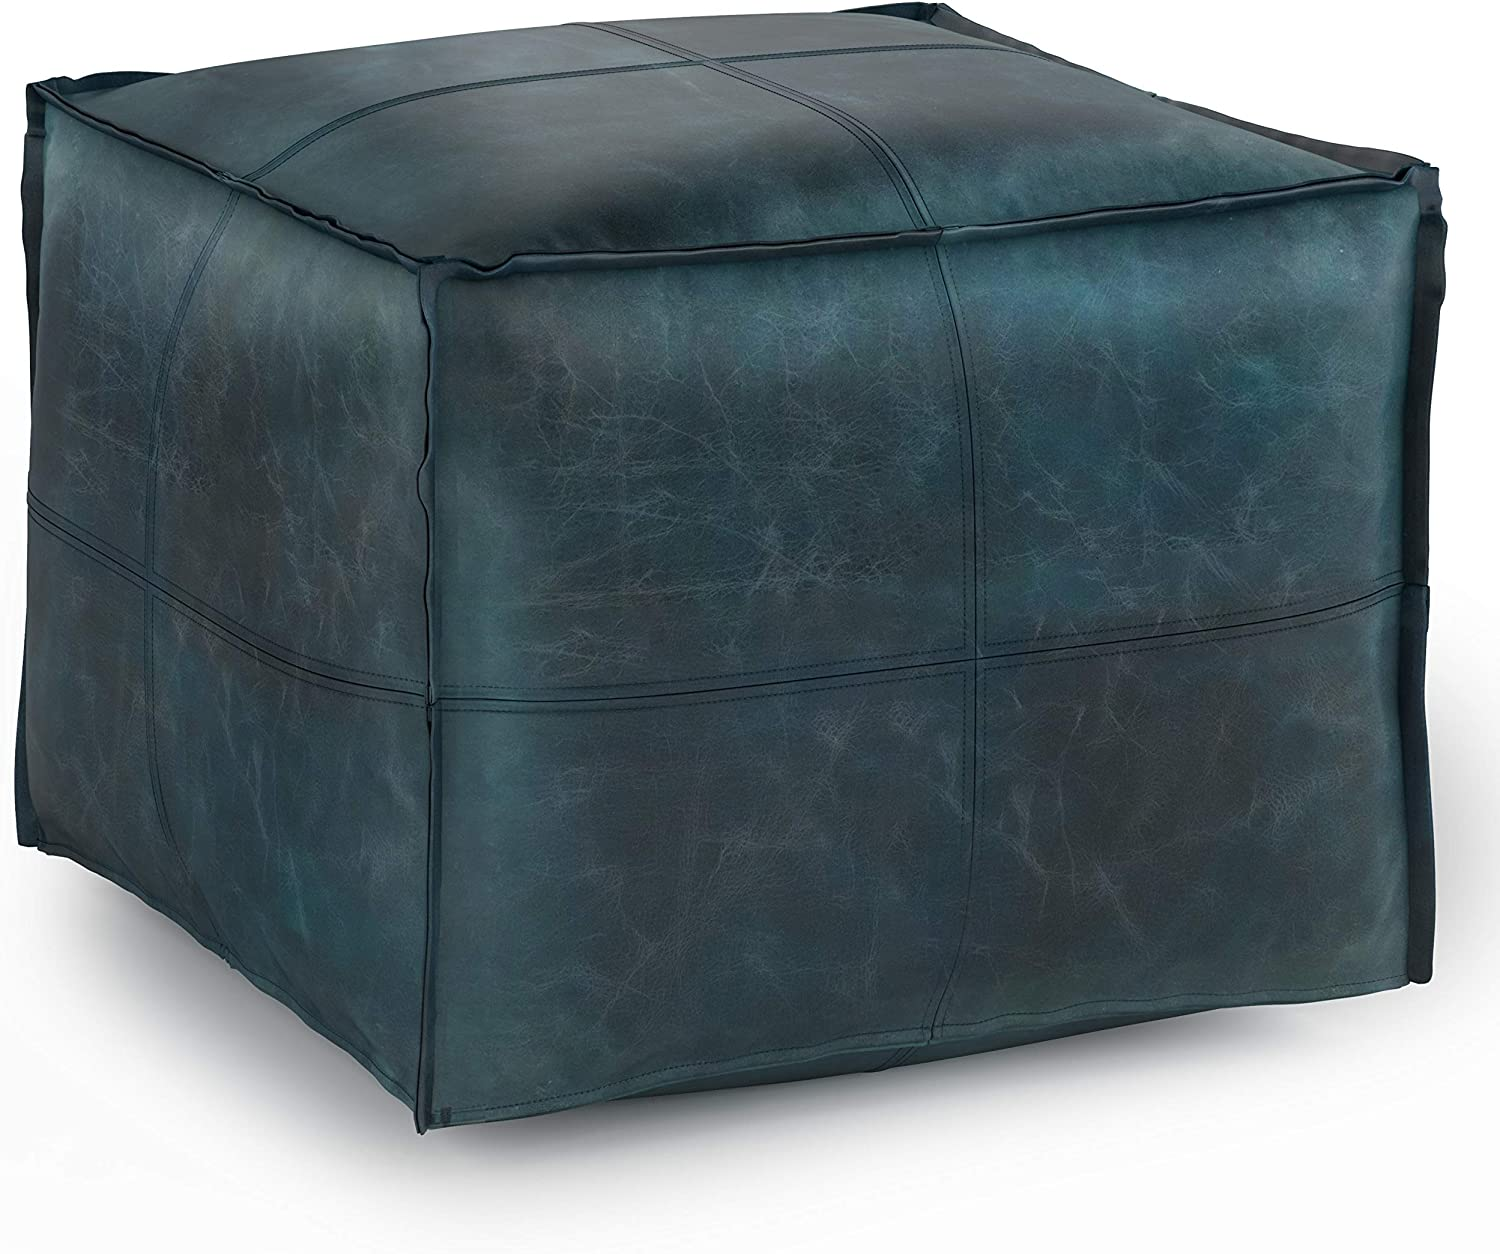 SIMPLIHOME Sheffield Square Pouf, 18 inch, Distressed Teal Blue